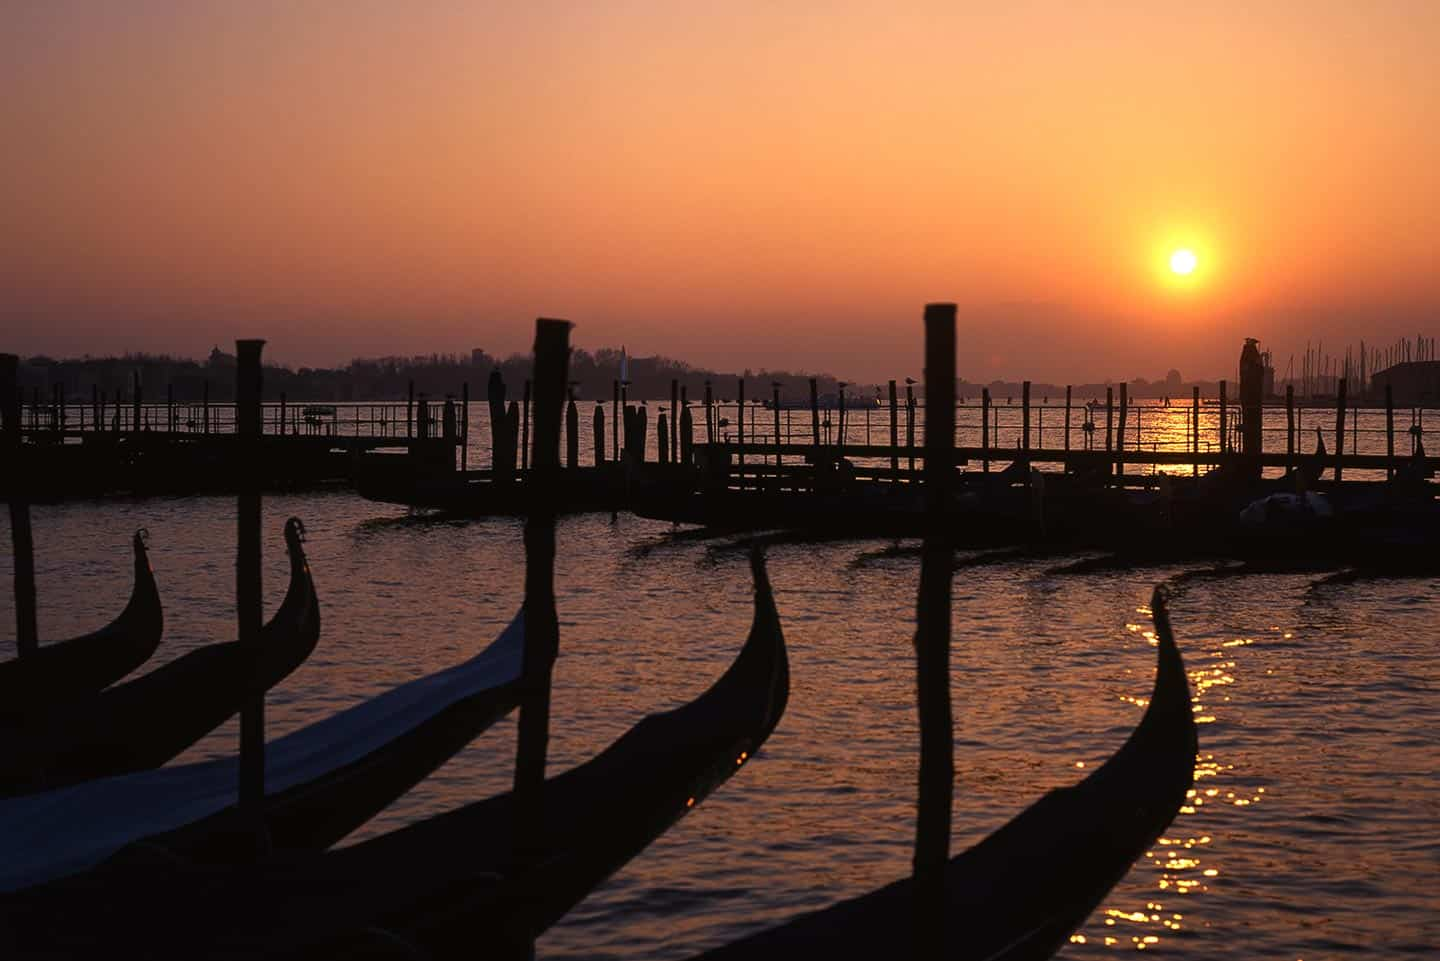 Image of gondolas silhouetted at dawn in Venice